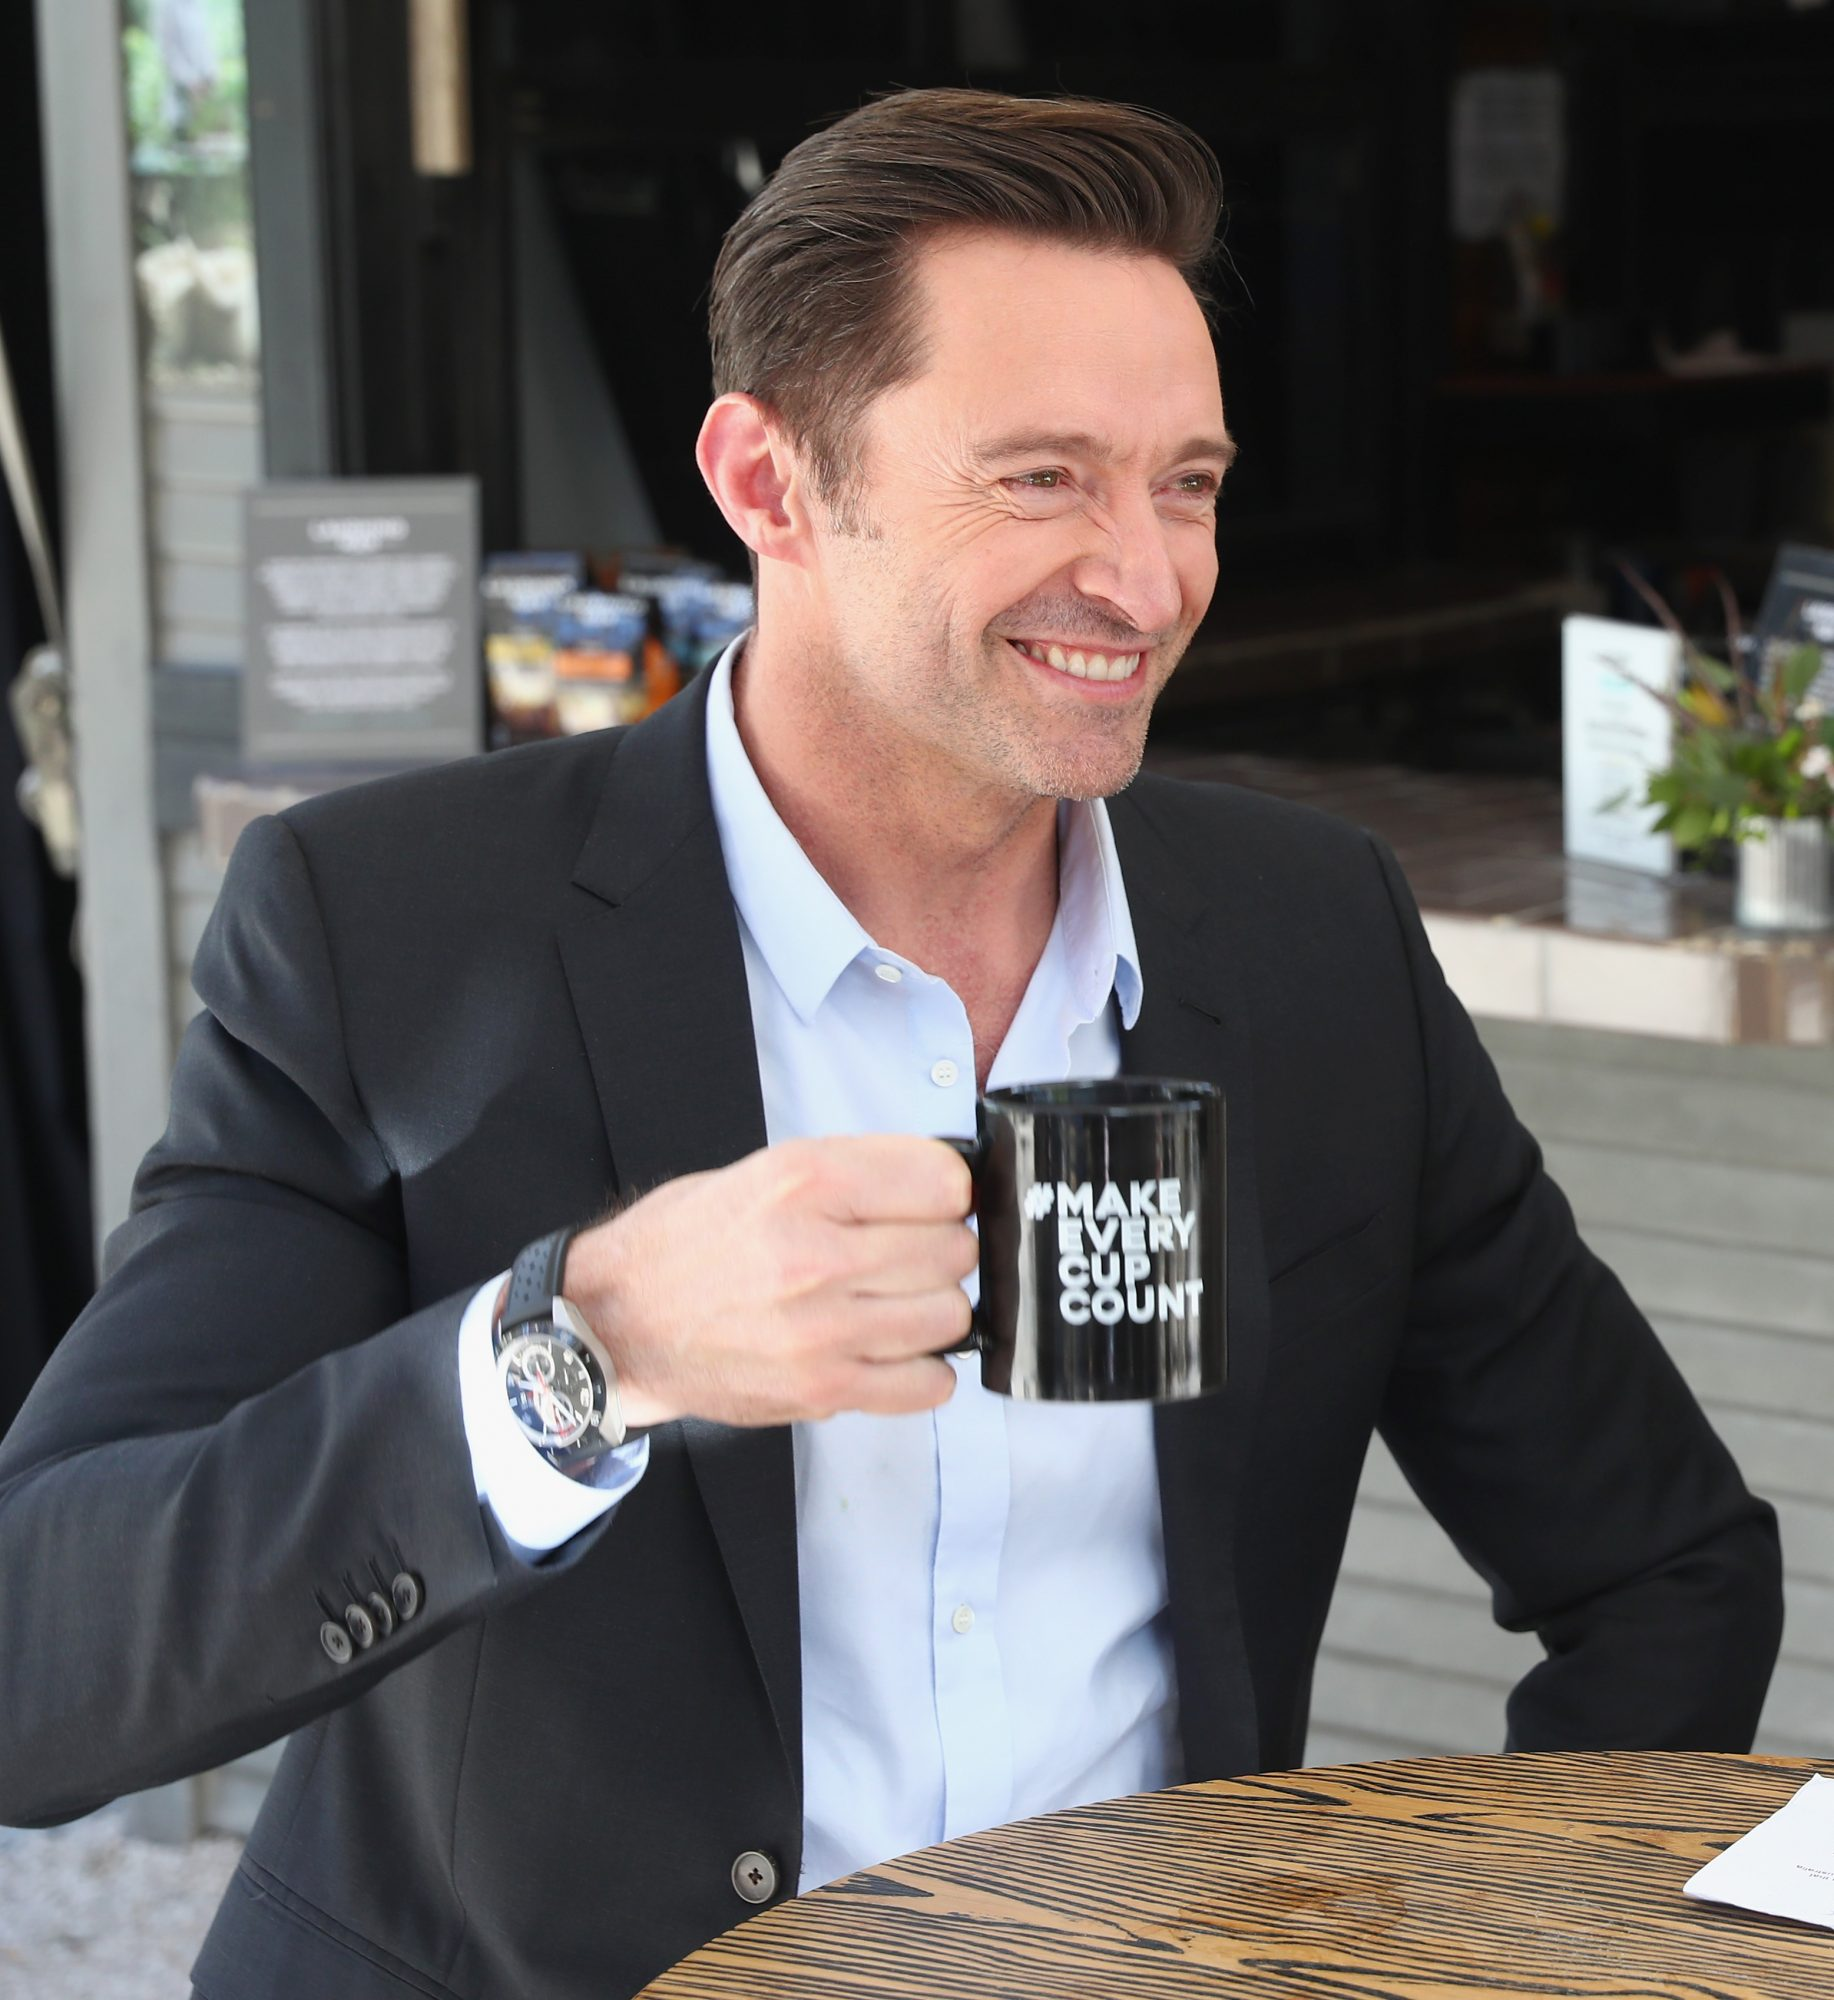 Hugh Jackman Coffee Company